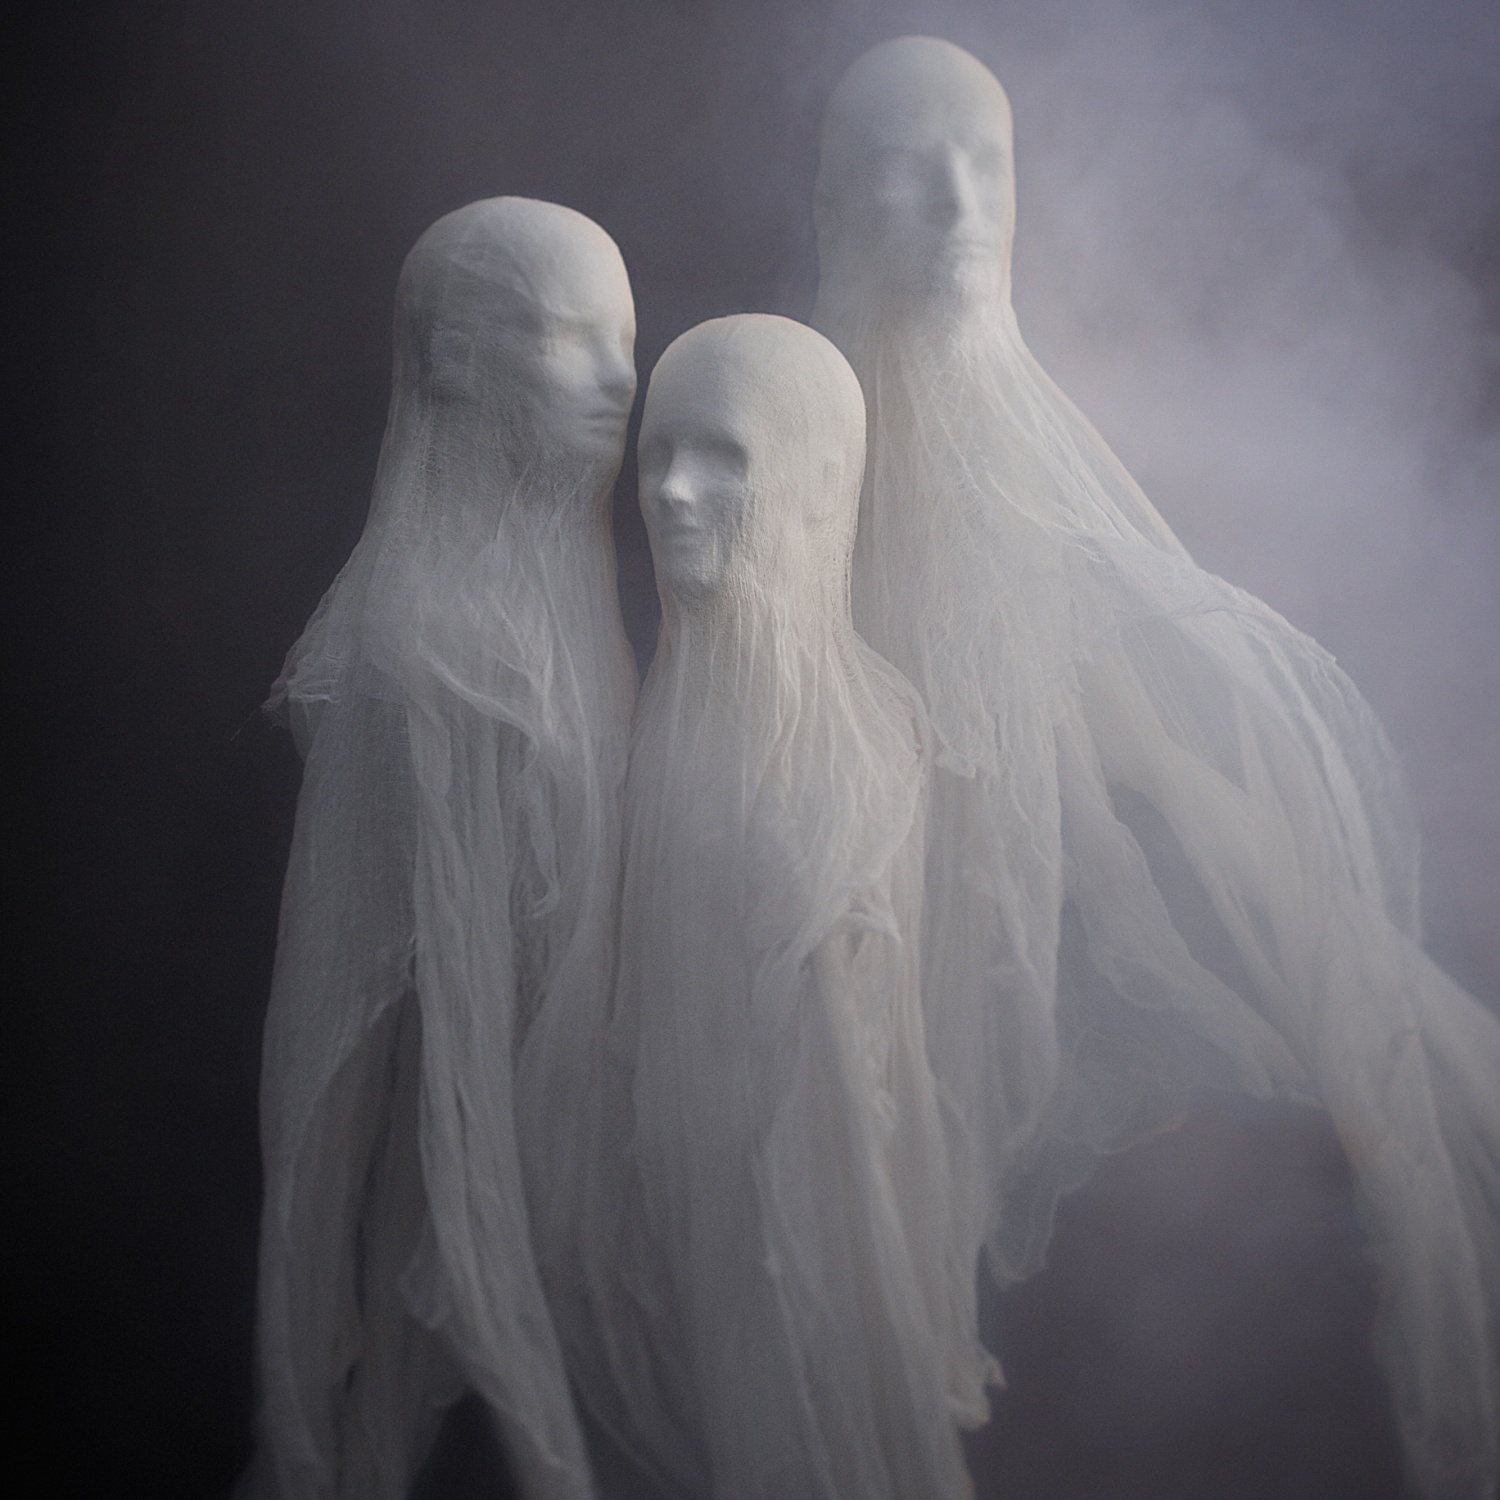 Sinister Ghost Sculptures